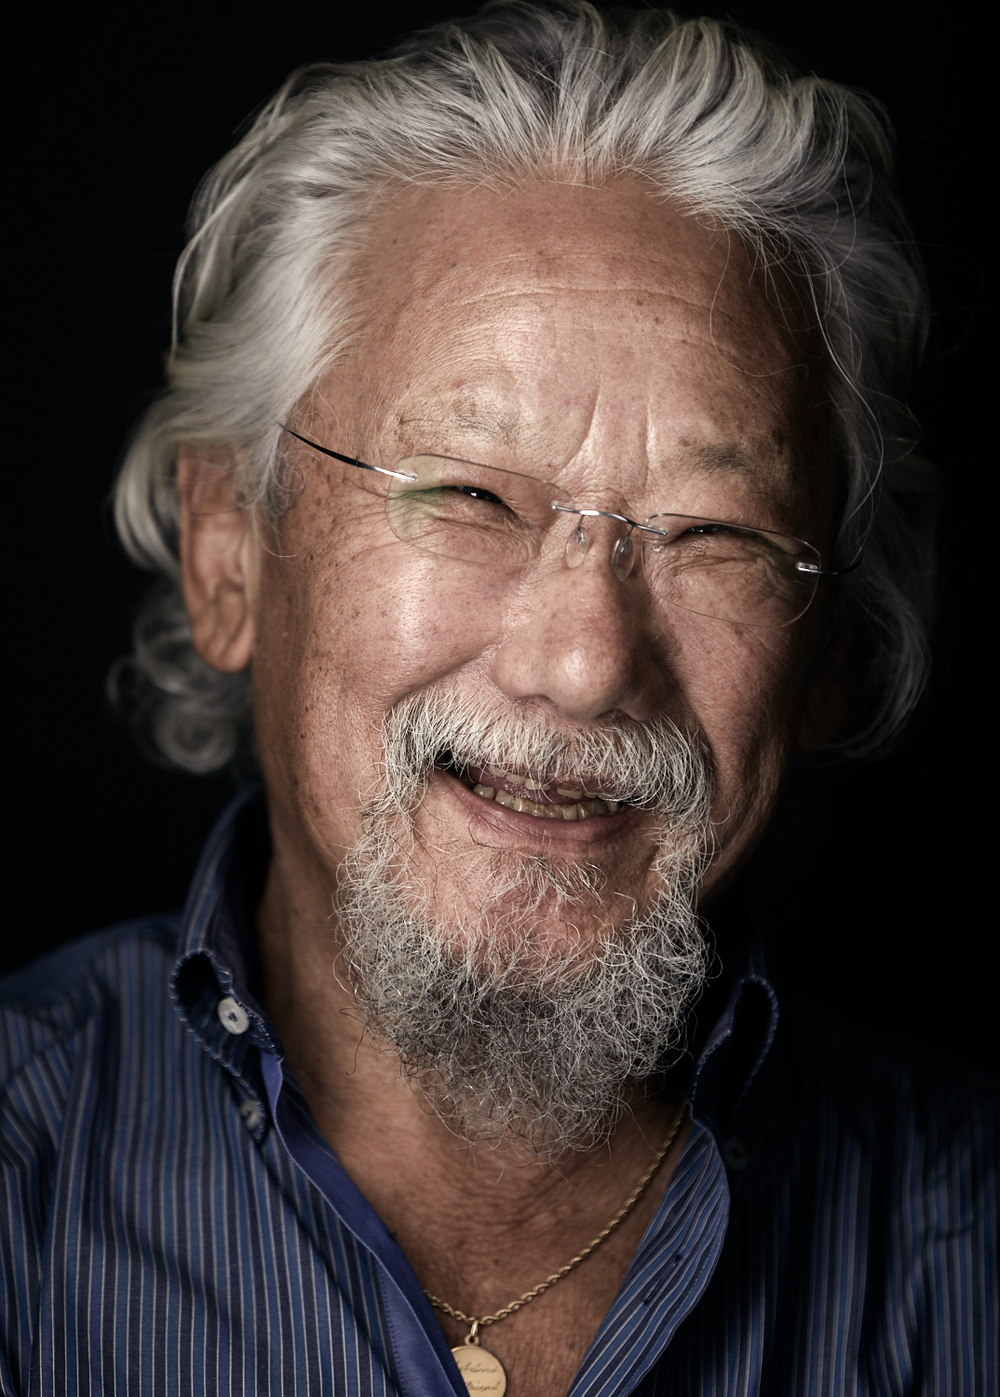 David Suzuki for VCB34314.jpg